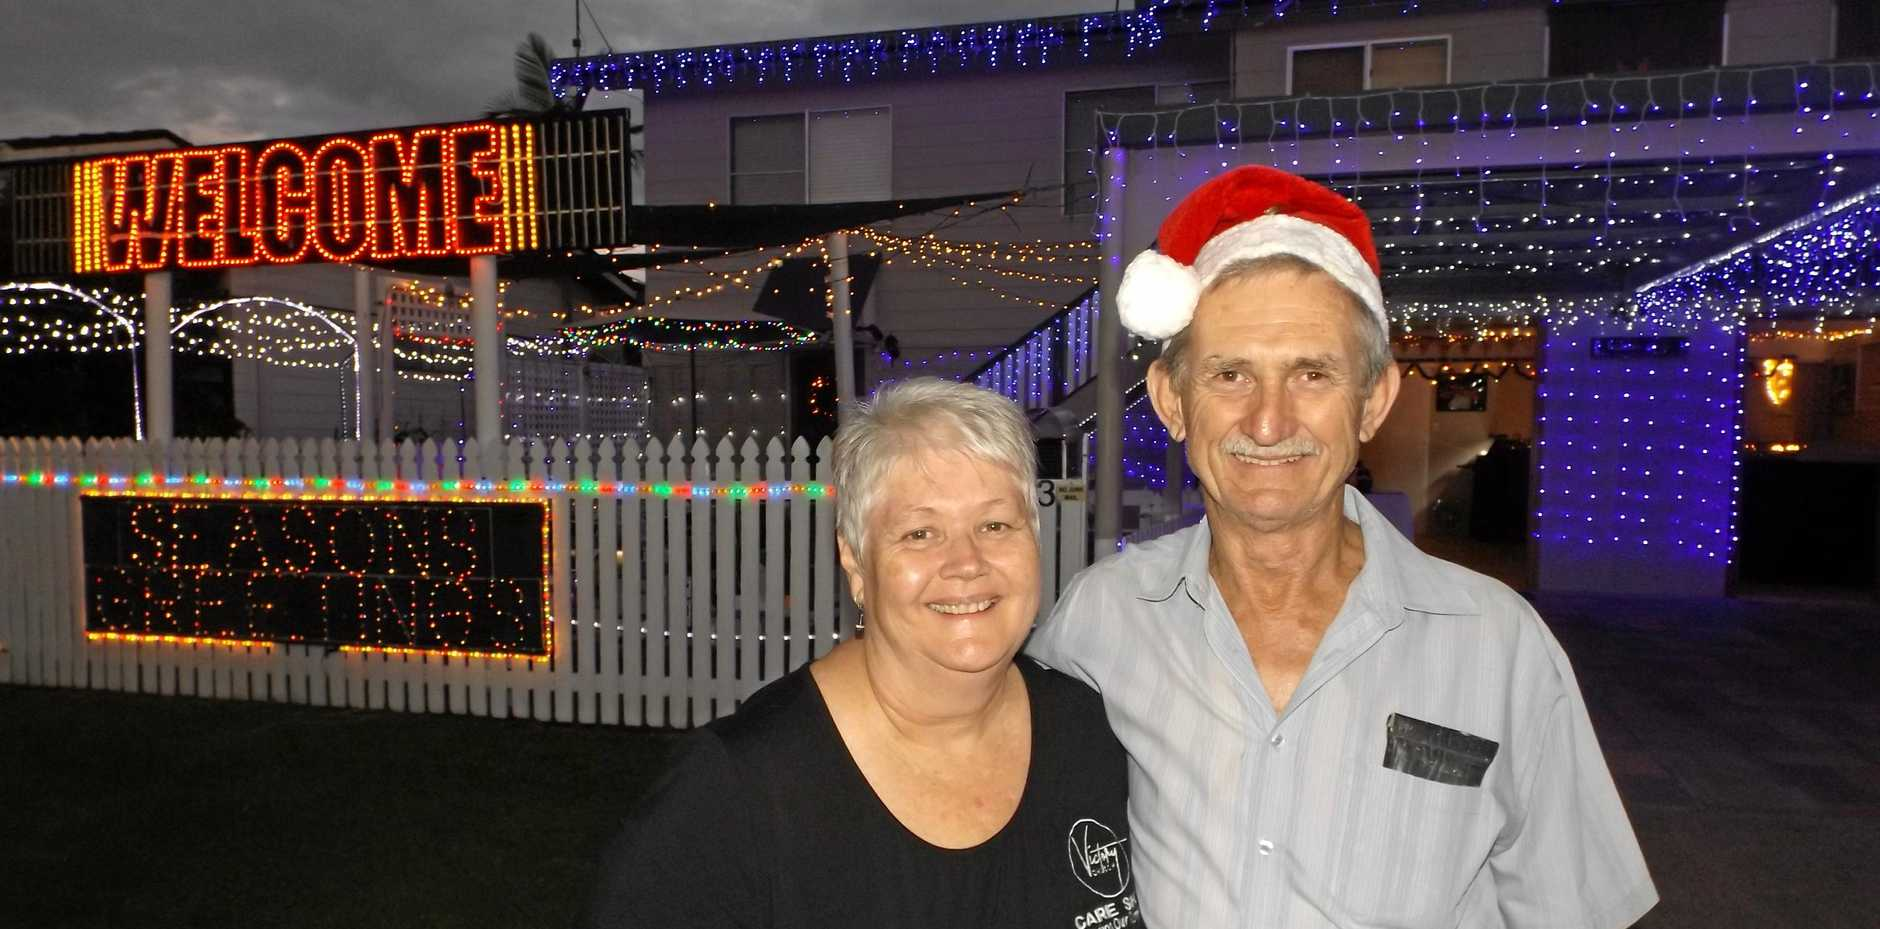 Alexandra and Malcolm Weber love to light up their home to spread the Christmas cheer. They are marked on the map at 53 Thurecht St, Maryborough.